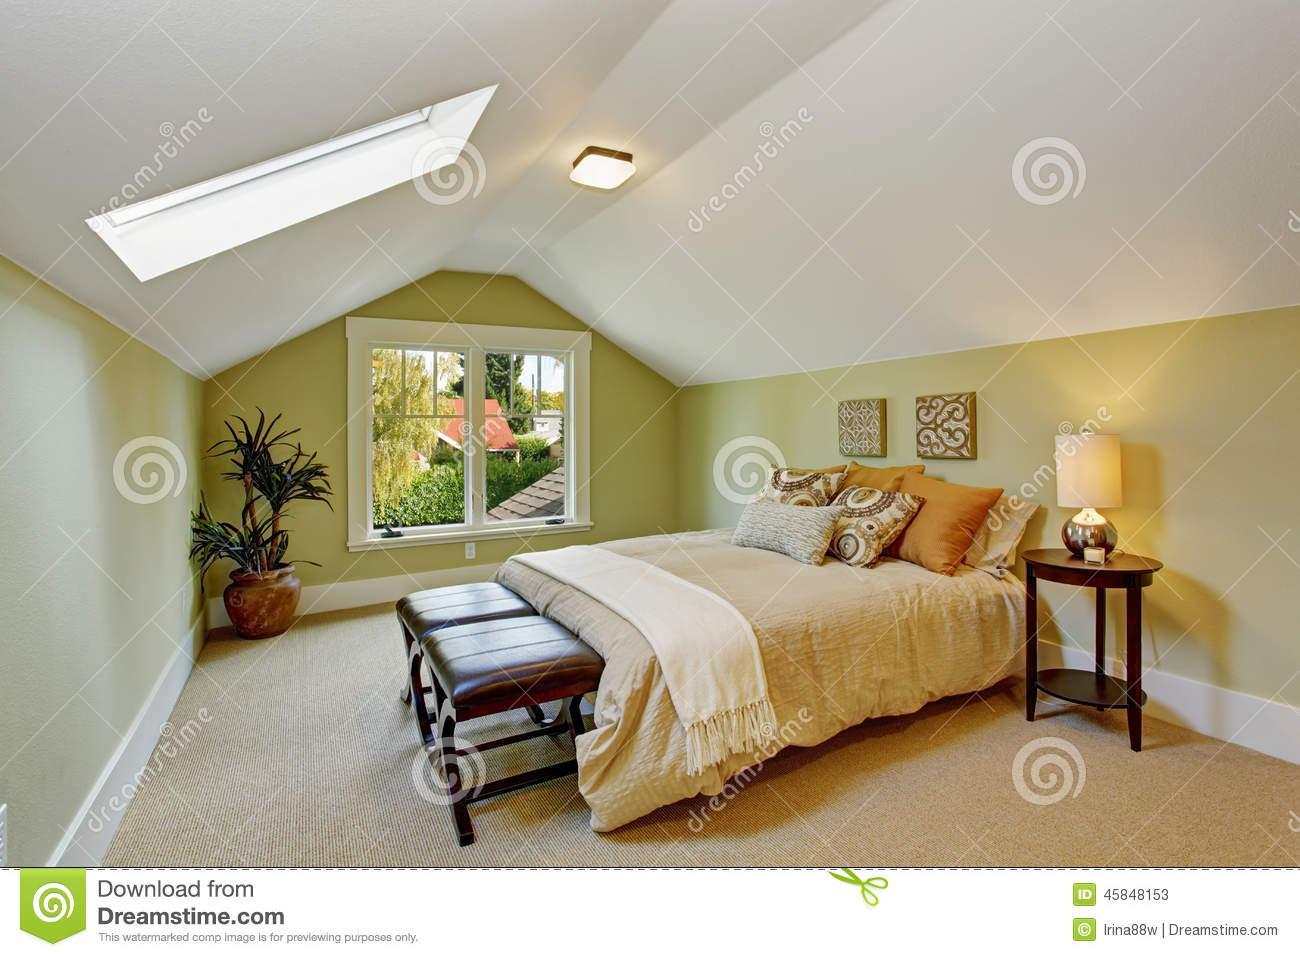 Bedroom No Ceiling Light Bedroom Interior With Vaulted Ceiling And Light Mint Walls